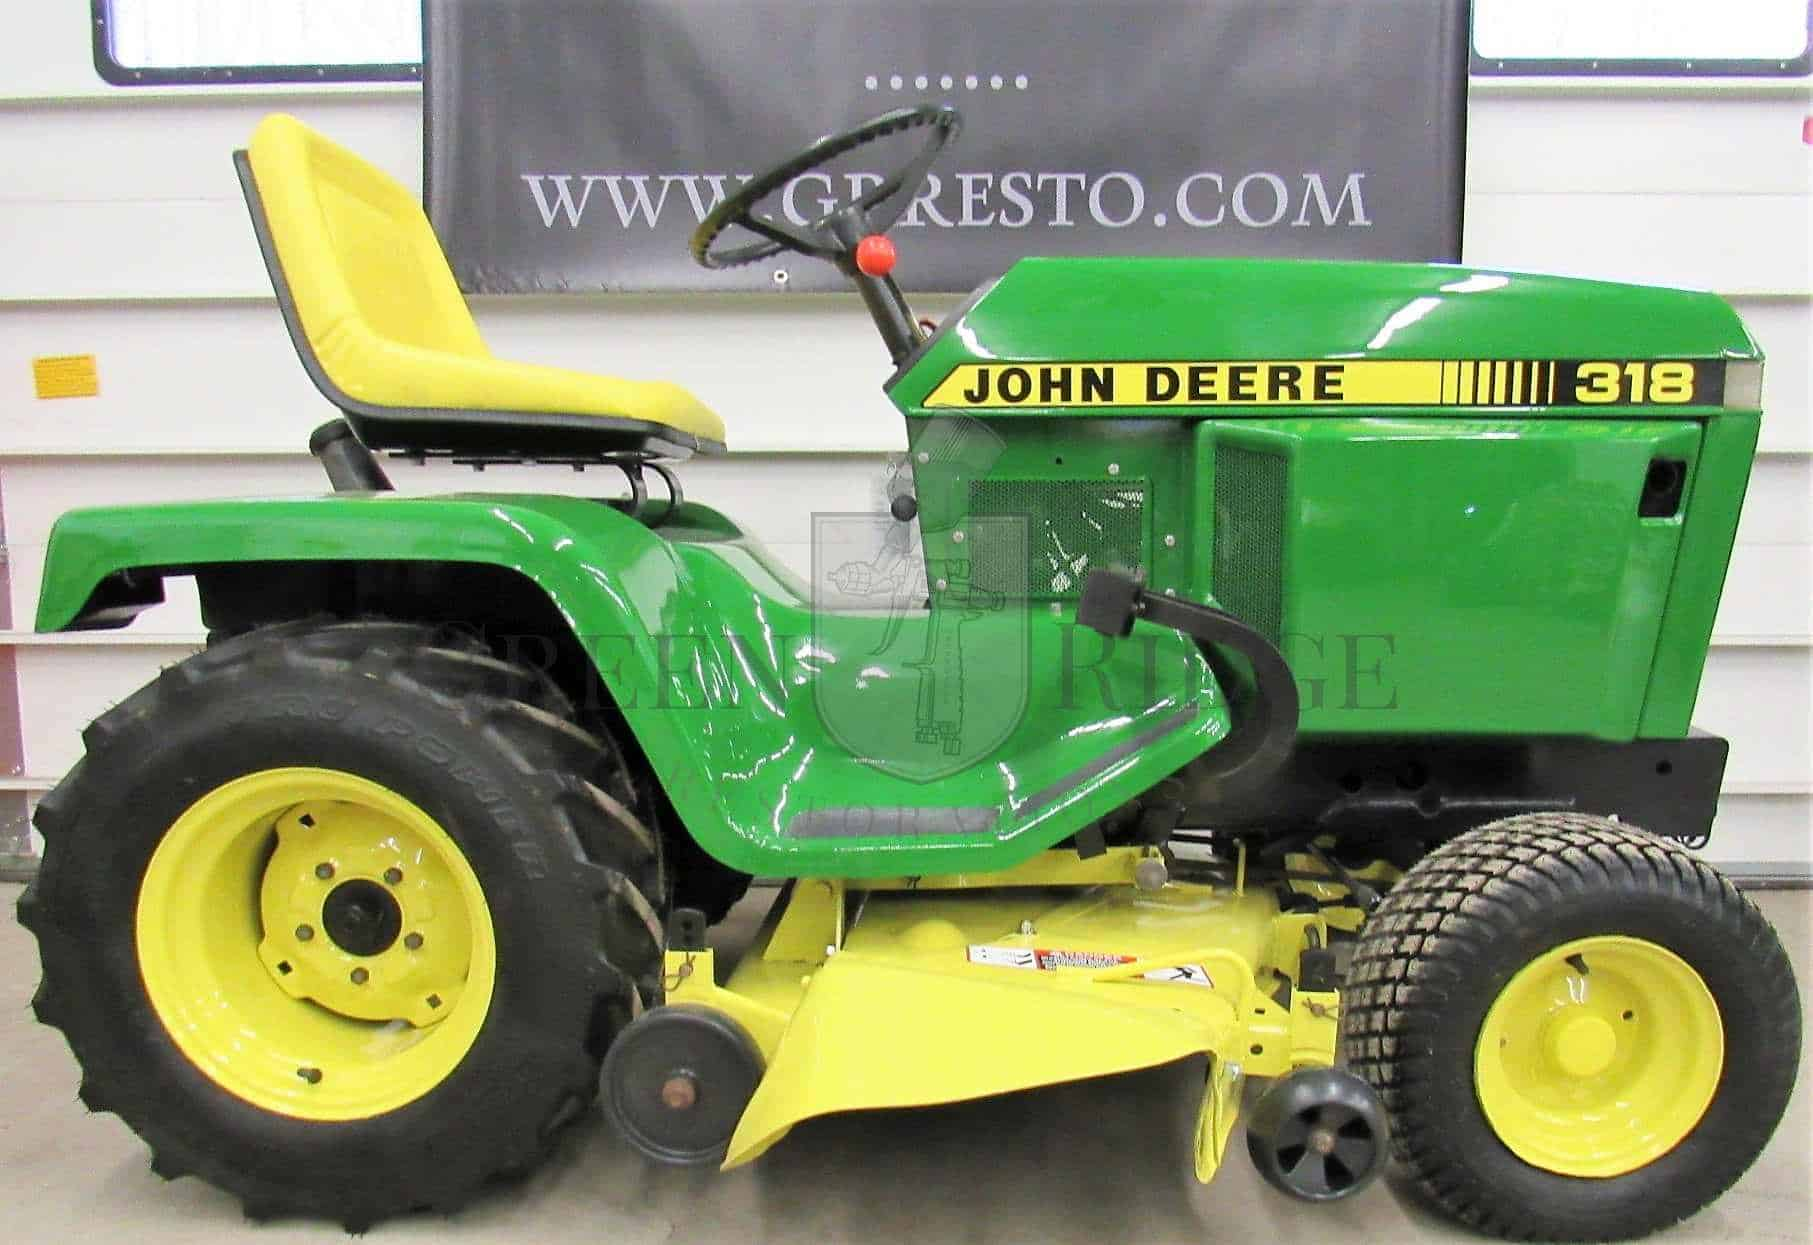 John Deere 318 >> John Deere 318 Answers To Your Common Troubleshooting Questions